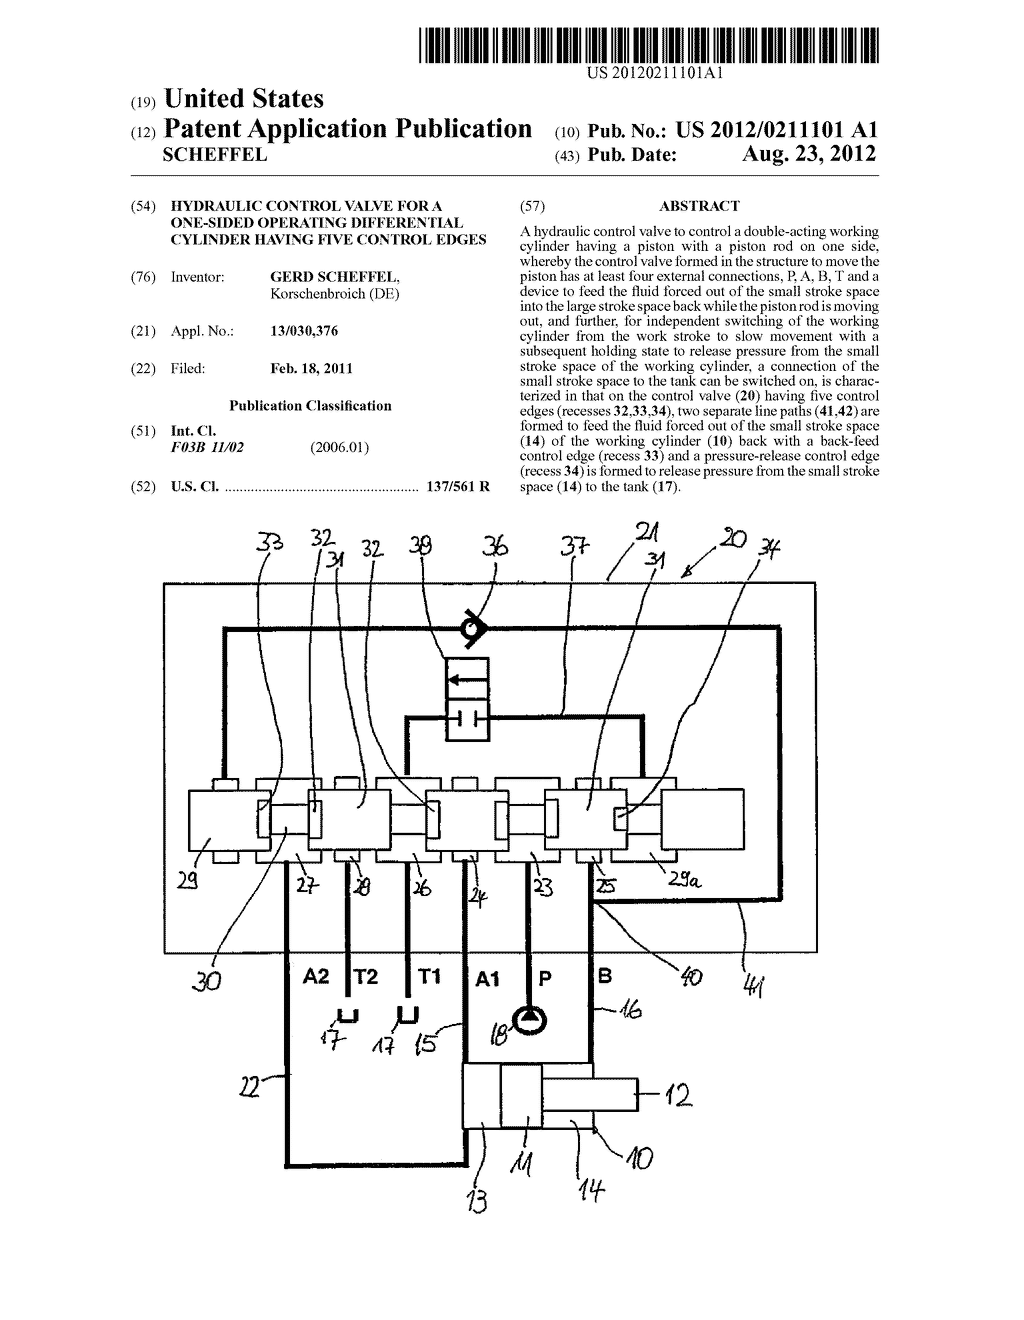 hight resolution of hydraulic control valve for a one sided operating differential cylinder having five control edges diagram schematic and image 01